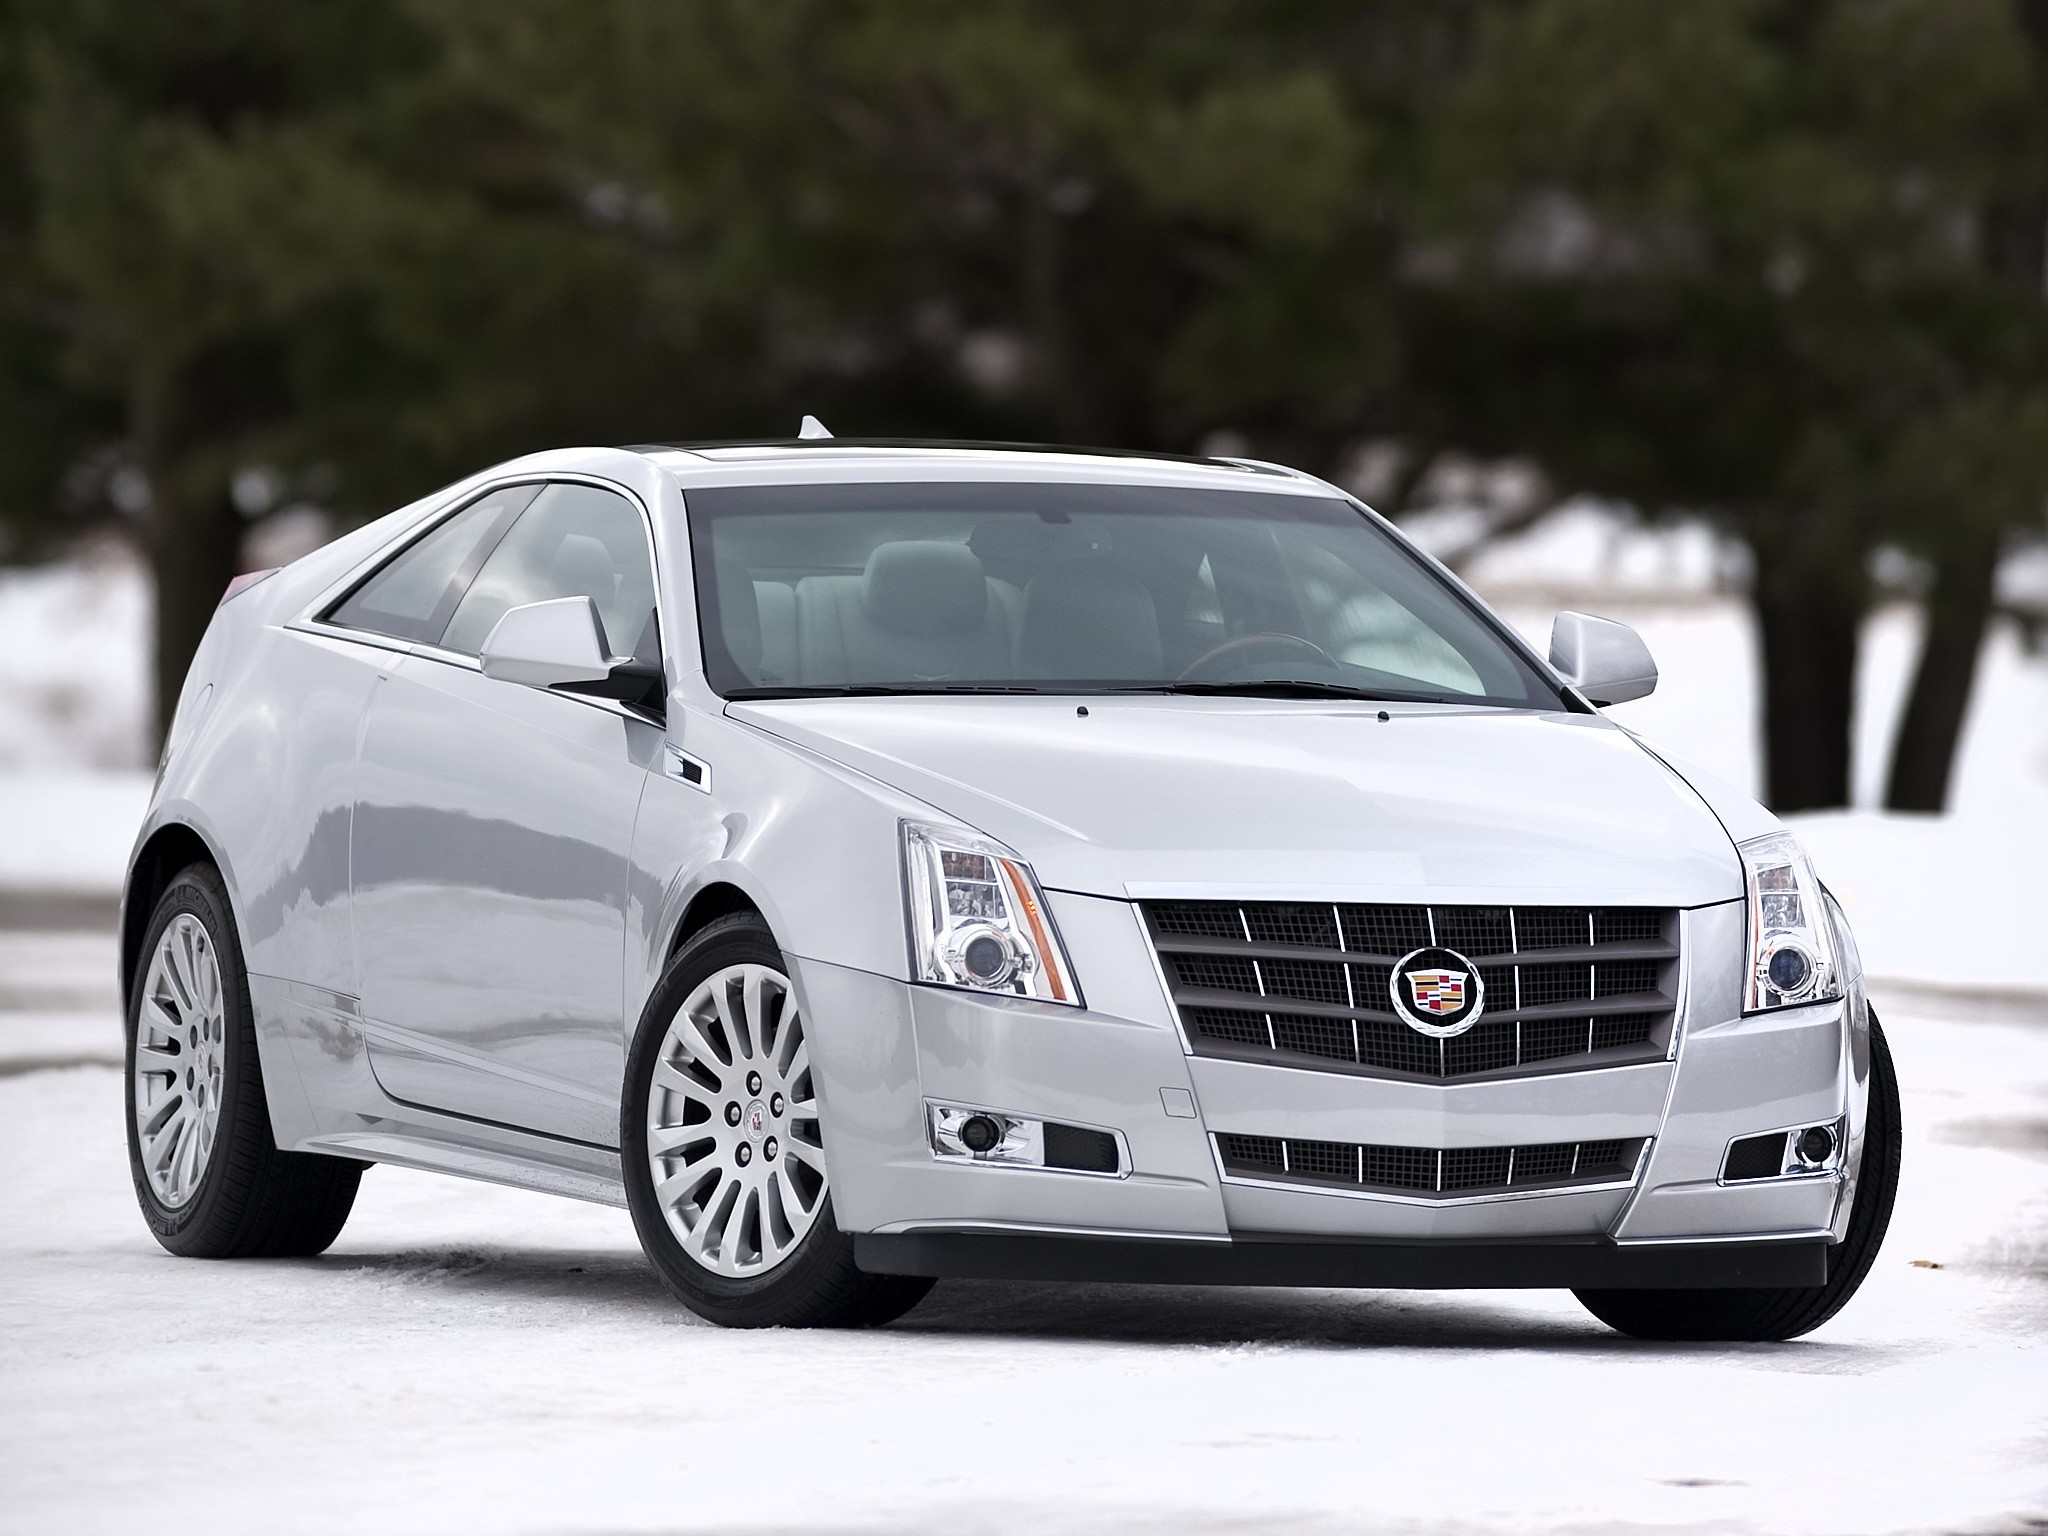 Cadillac Cts Coupe 2017 >> CADILLAC CTS Coupe specs & photos - 2011, 2012, 2013, 2014, 2015, 2016, 2017, 2018, 2019 ...